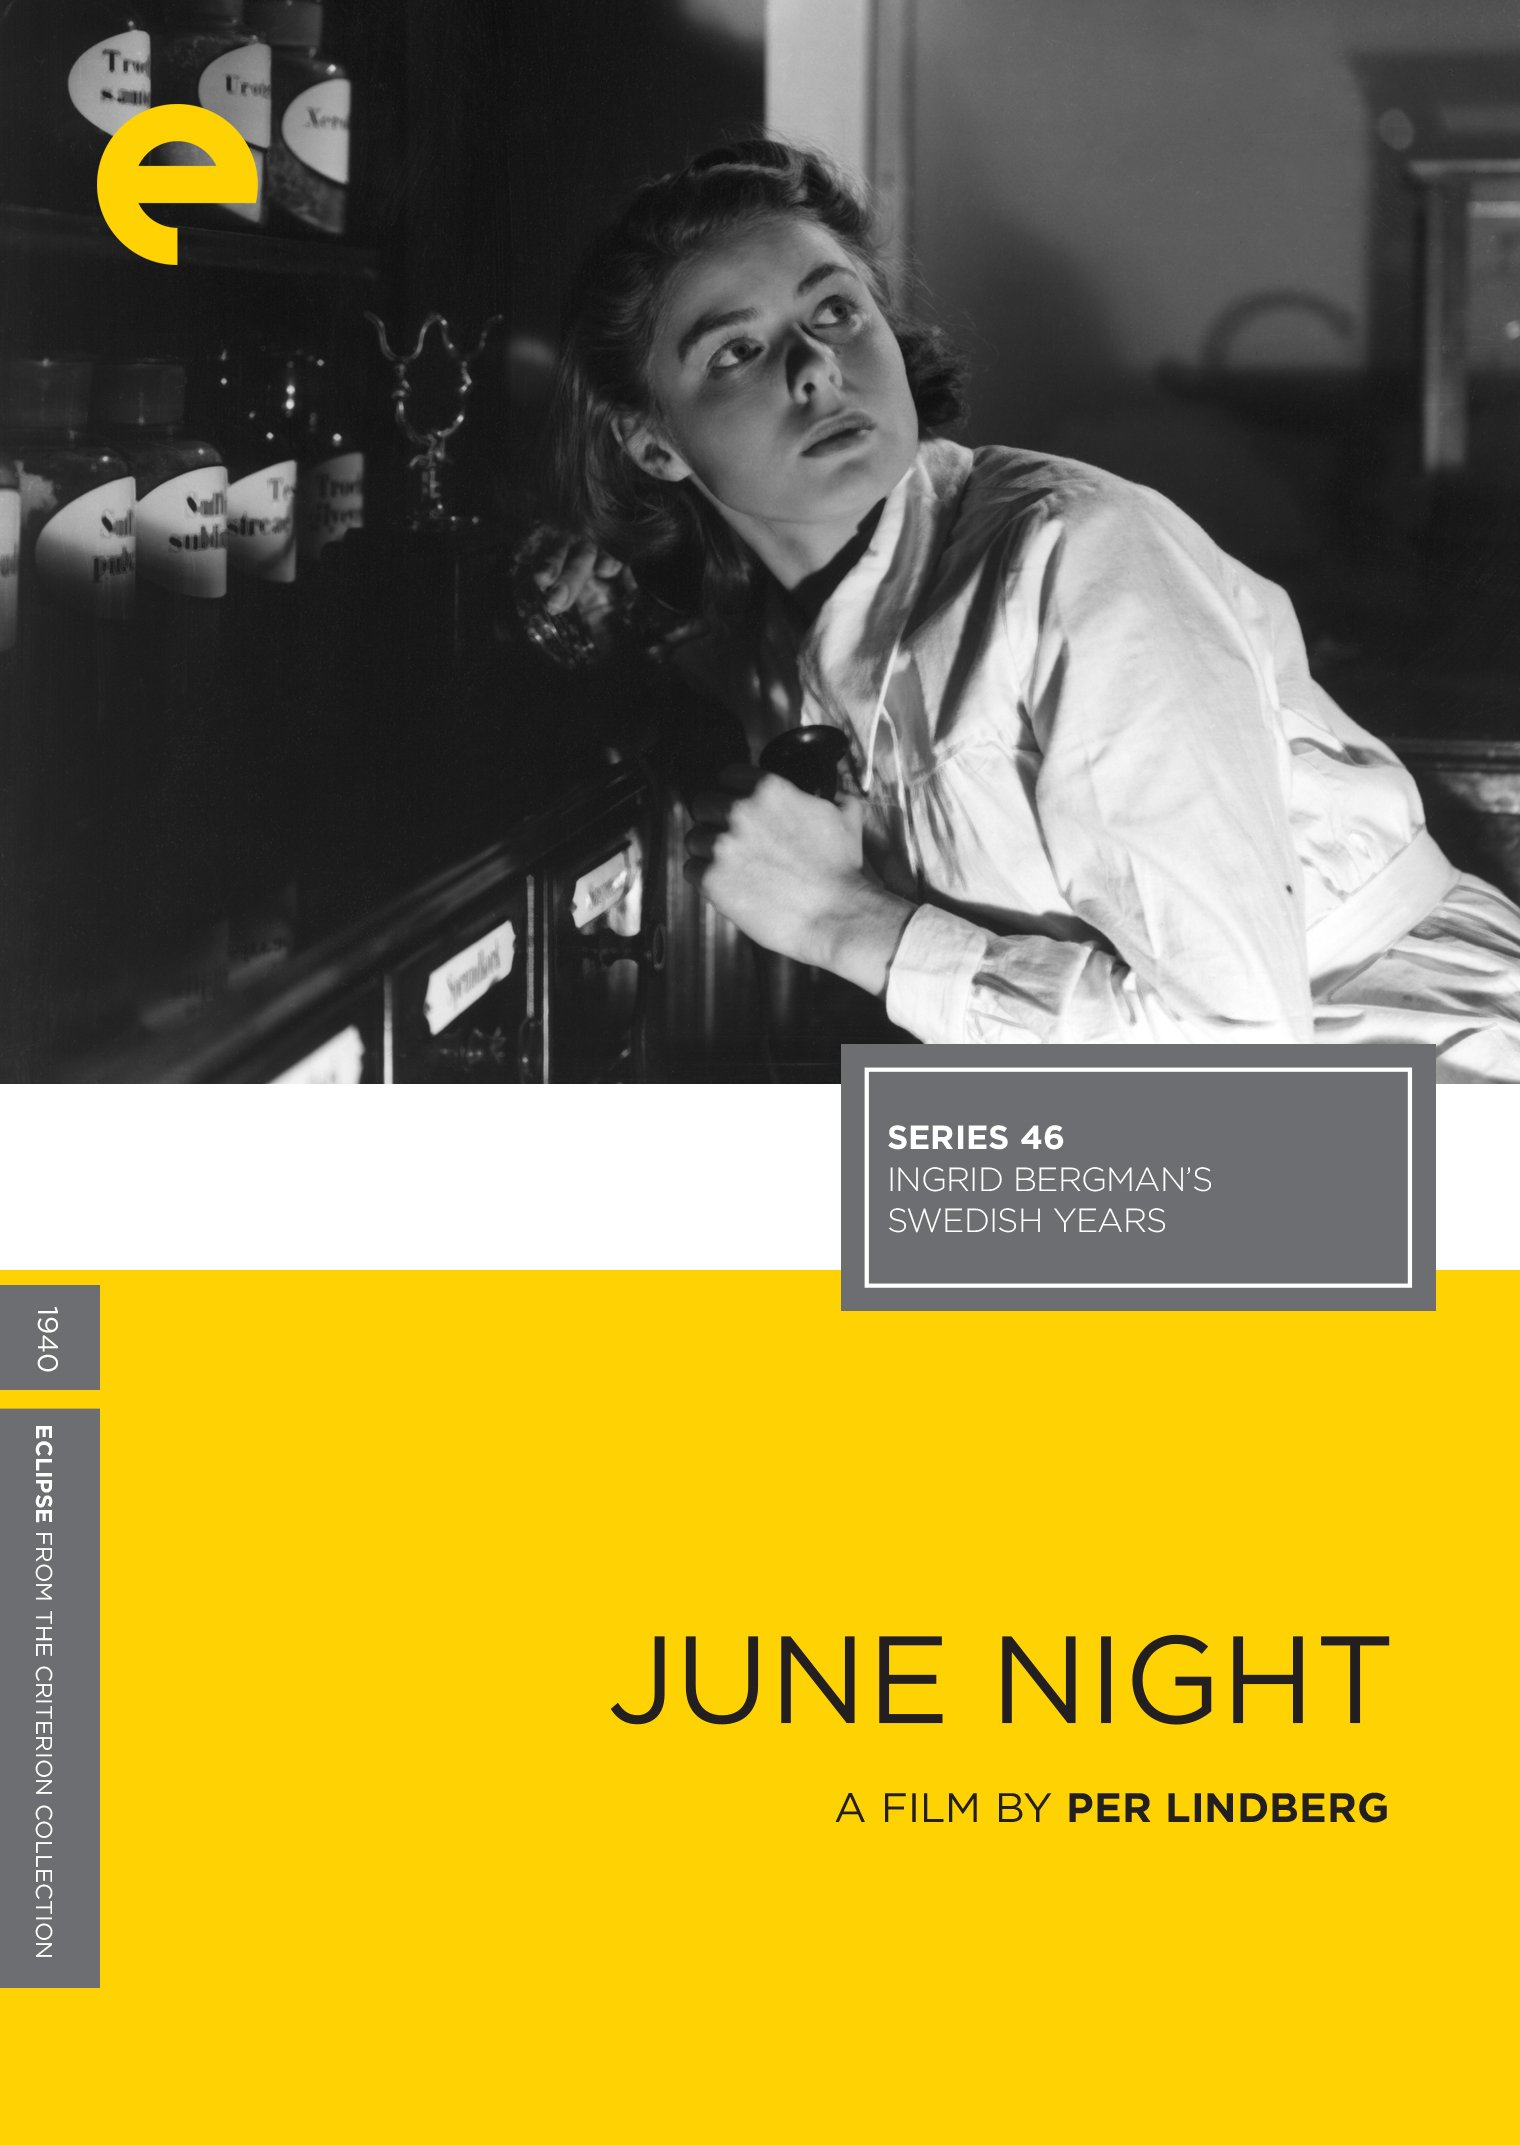 Eclipse Series 46: Ingrid Bergman's Swedish Years (The Count of the Old Town, Dollar, Intermezzo, Walpurgis Night, A Woman's Face, June Night) (The Criterion Collection)